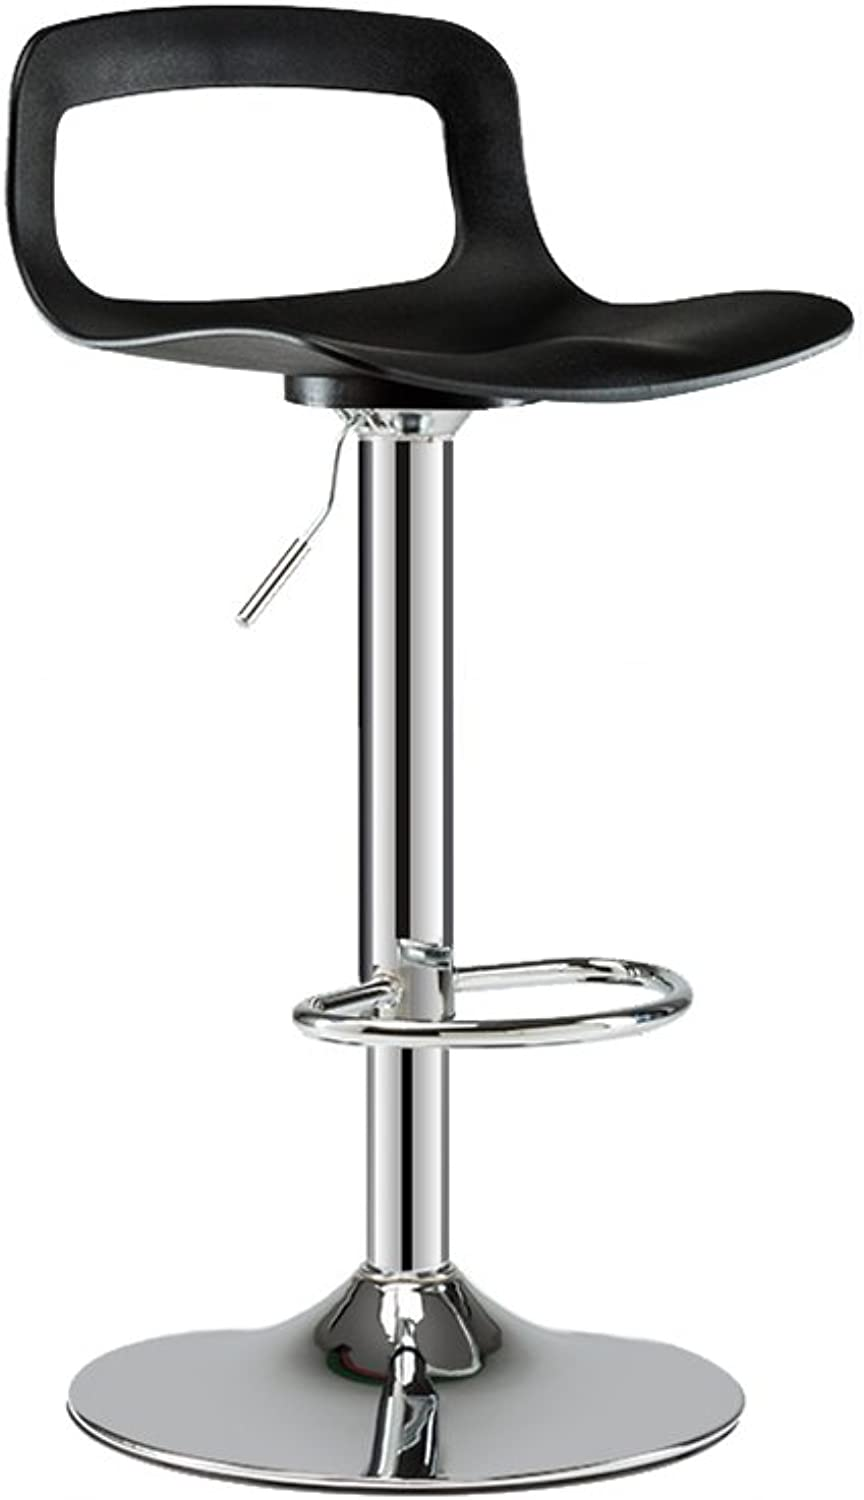 ZfgG Bar Stool Chair, 360 Degree Adjustable redating Plated Backrest Office Bar Stool Bar Chair Height 120cm,Applicable bar Restaurant Counter (color   B)